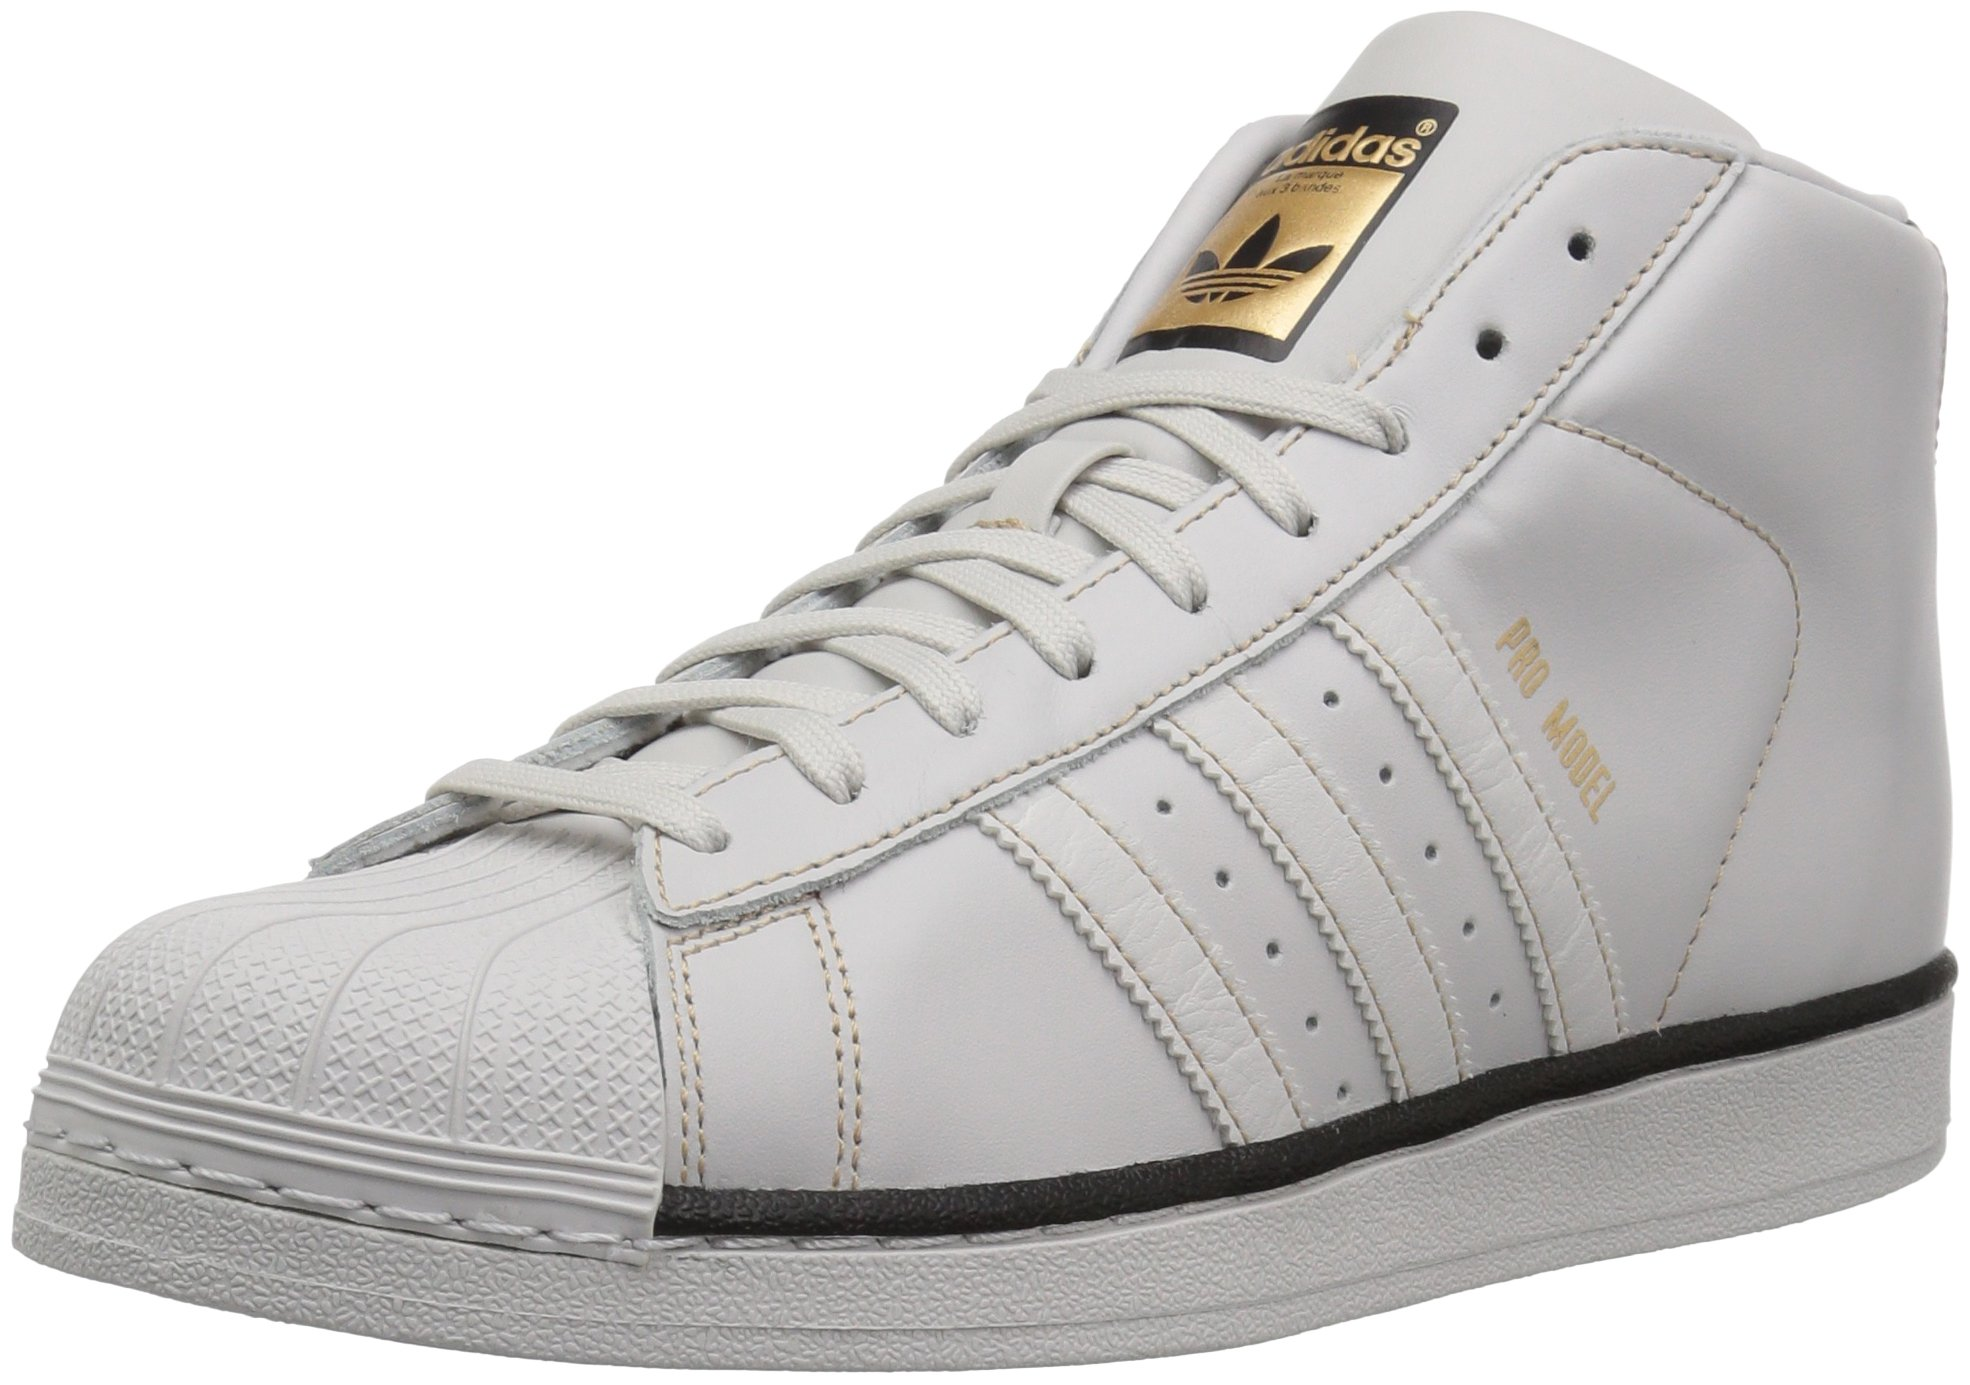 competitive price 3b674 d5a2a Galleon - Adidas Originals Men s PRO Model Sneaker, Grey One Black Tactile  Gold, 14 Medium US